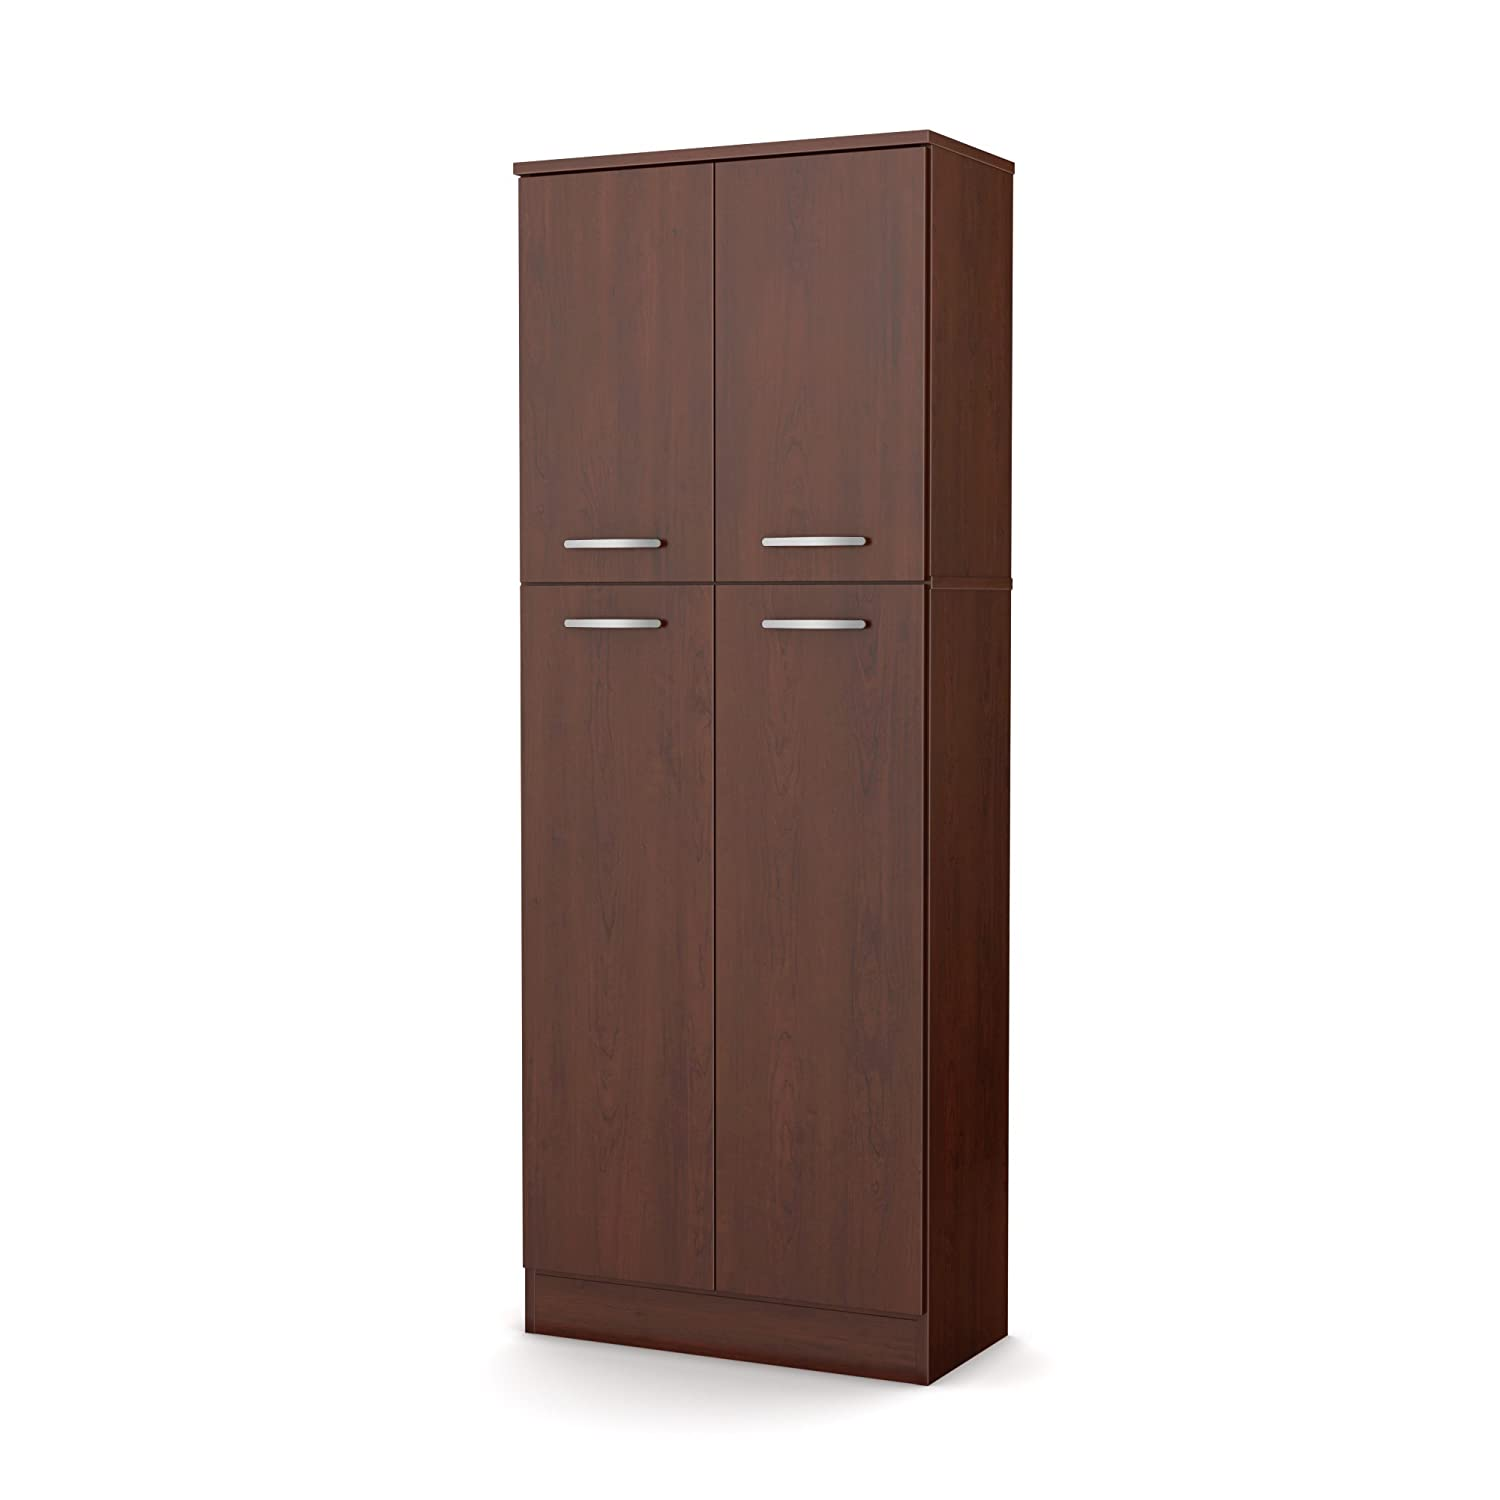 Tall Kitchen Pantry Cabinet Kitchen Cabinet Pantry Cupboard Brown Organizer Food